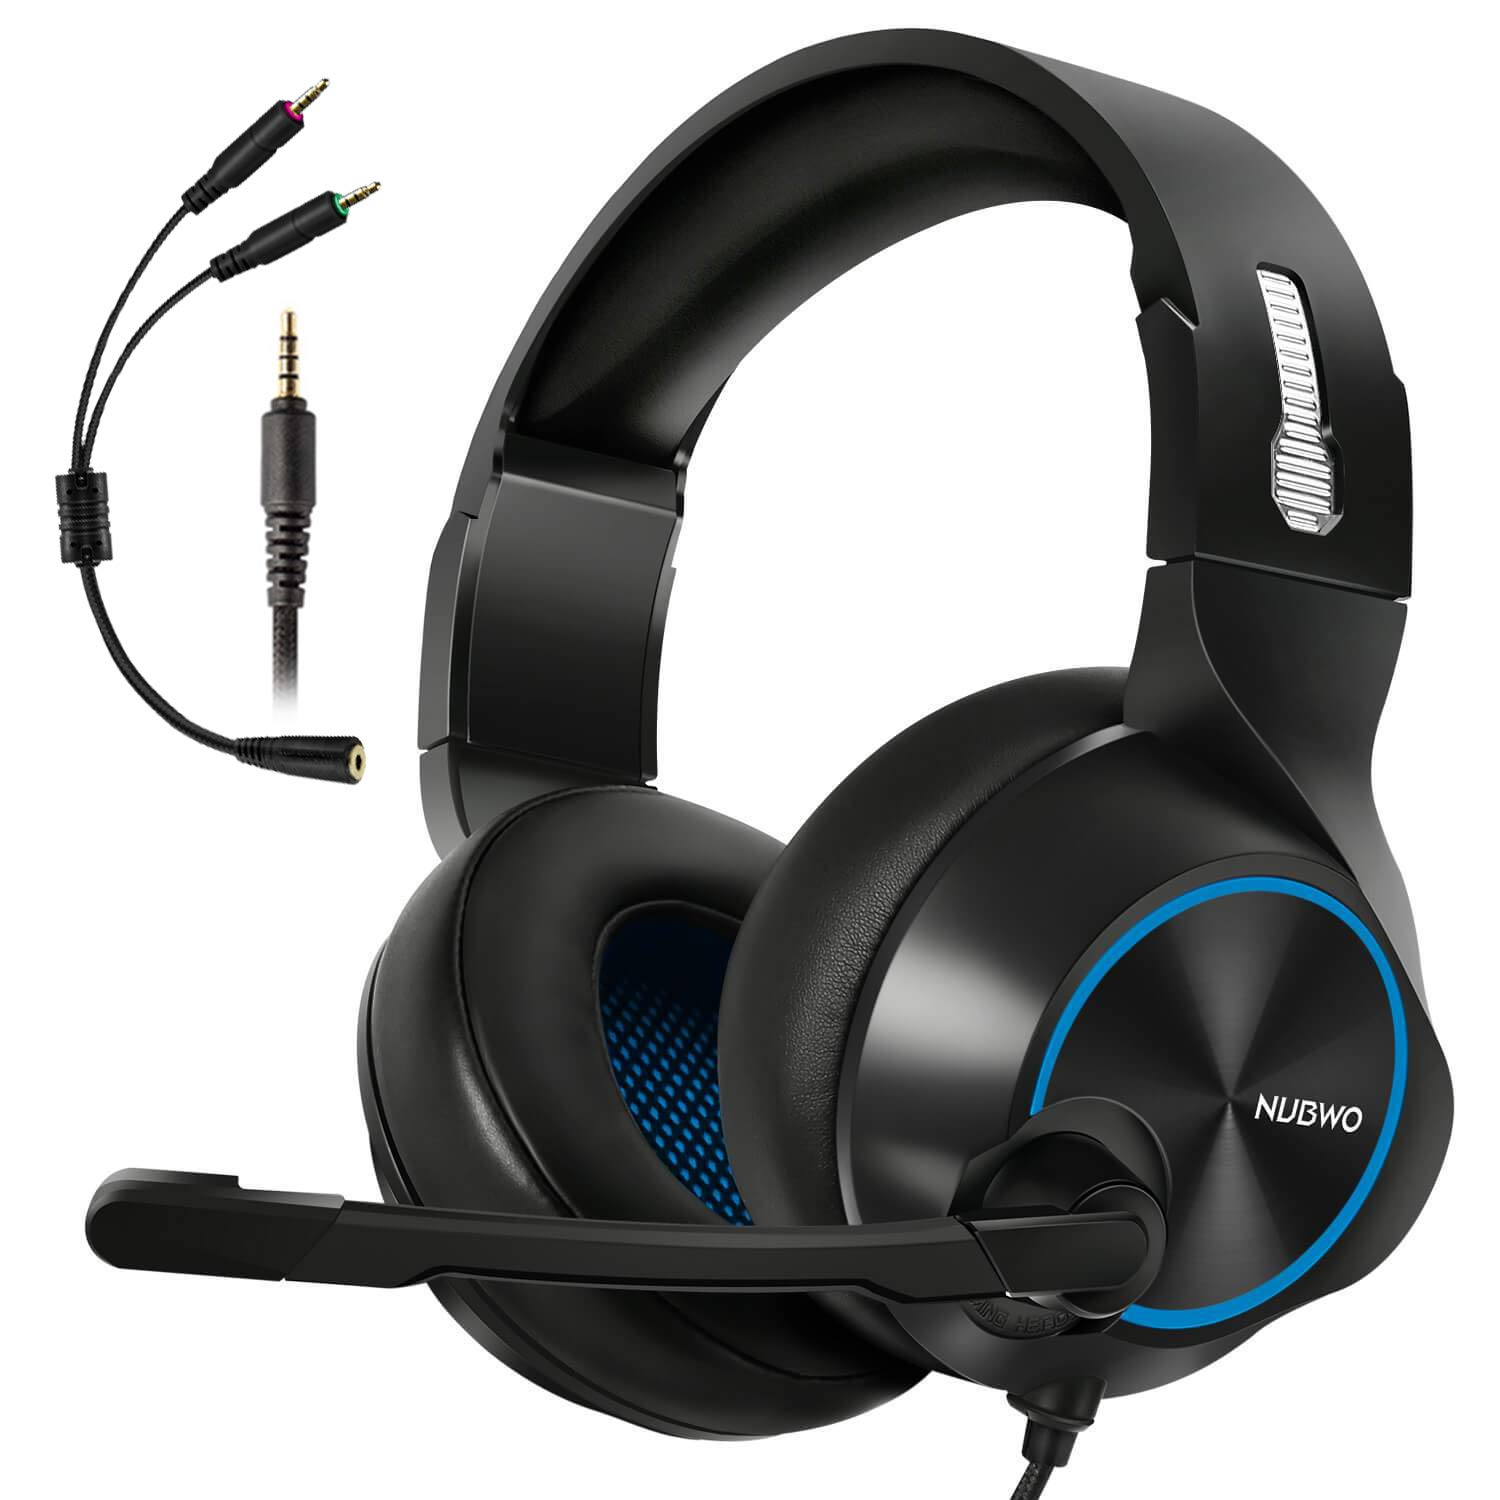 Gaming Headset for Xbox One, PS4, PC, Controller, ARKARTECH Noise Cancelling Over Ear Headphones with Mic, Bass Surround Soft Memory Earmuffs for Computer Laptop Switch Games by ARKARTECH (Image #1)